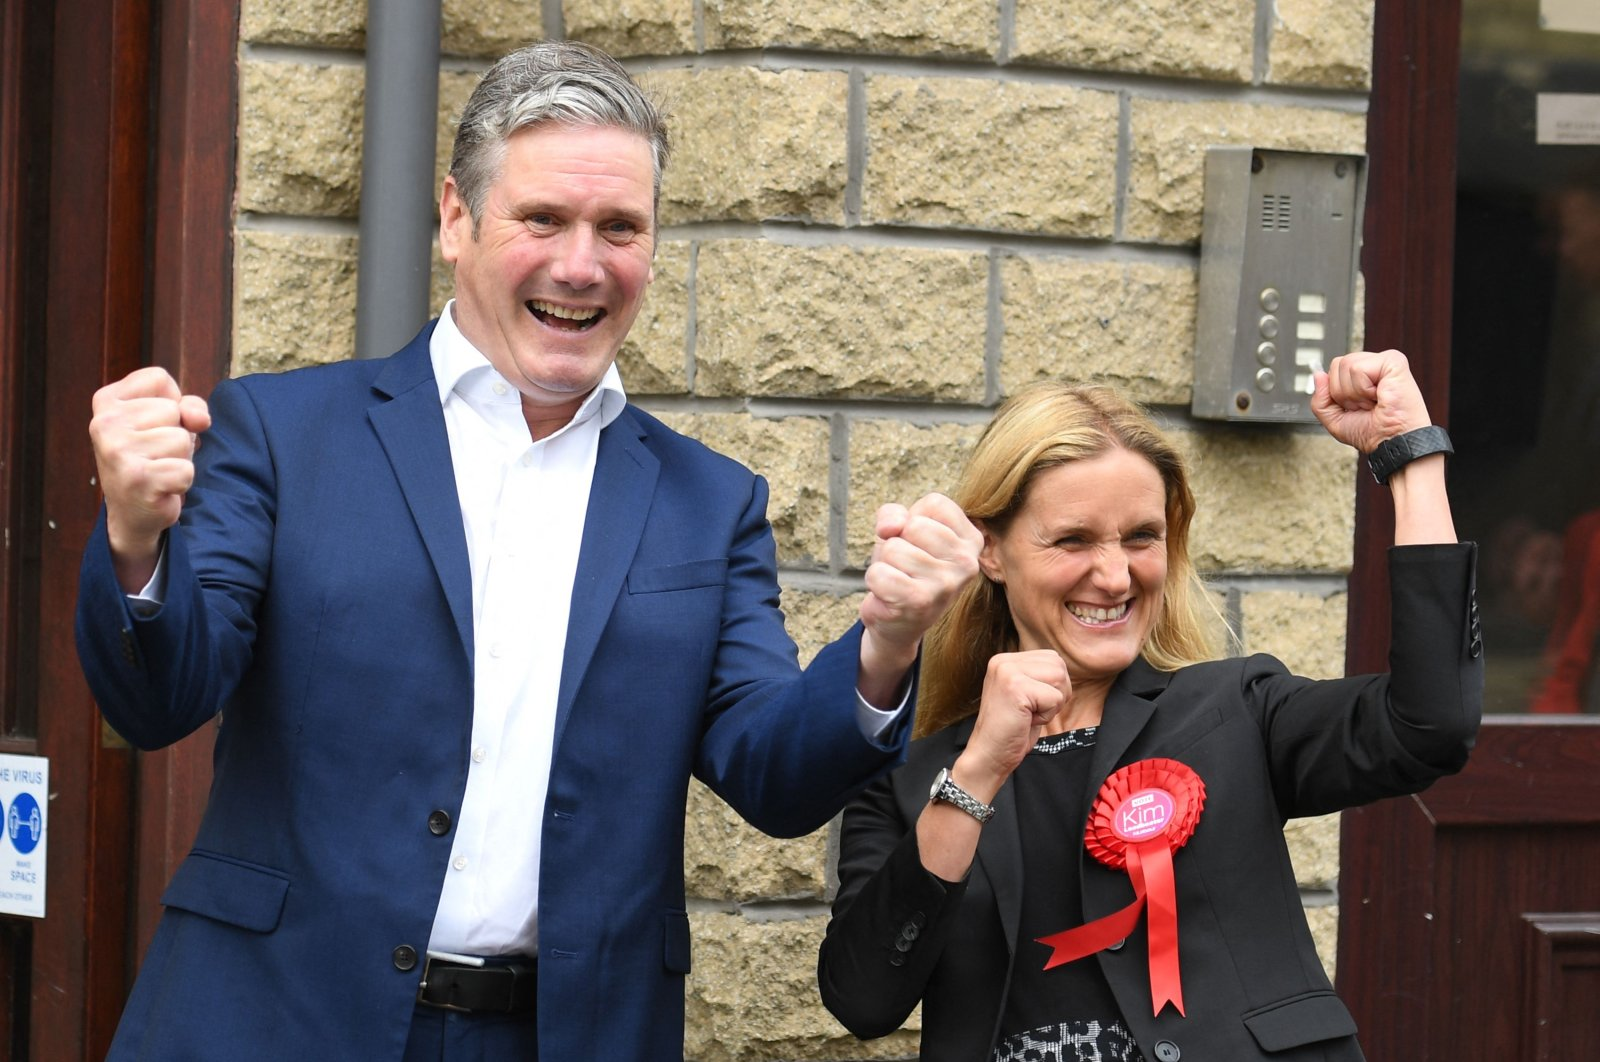 Britain's main opposition Labour Party leader Keir Starmer (L) and Labour Party's Kim Leadbeater celebrate victory outside the campaign center following the Batley and Spen by-election in Cleckheaton, West Yorkshire on July 2, 2021. (AFP Photo)